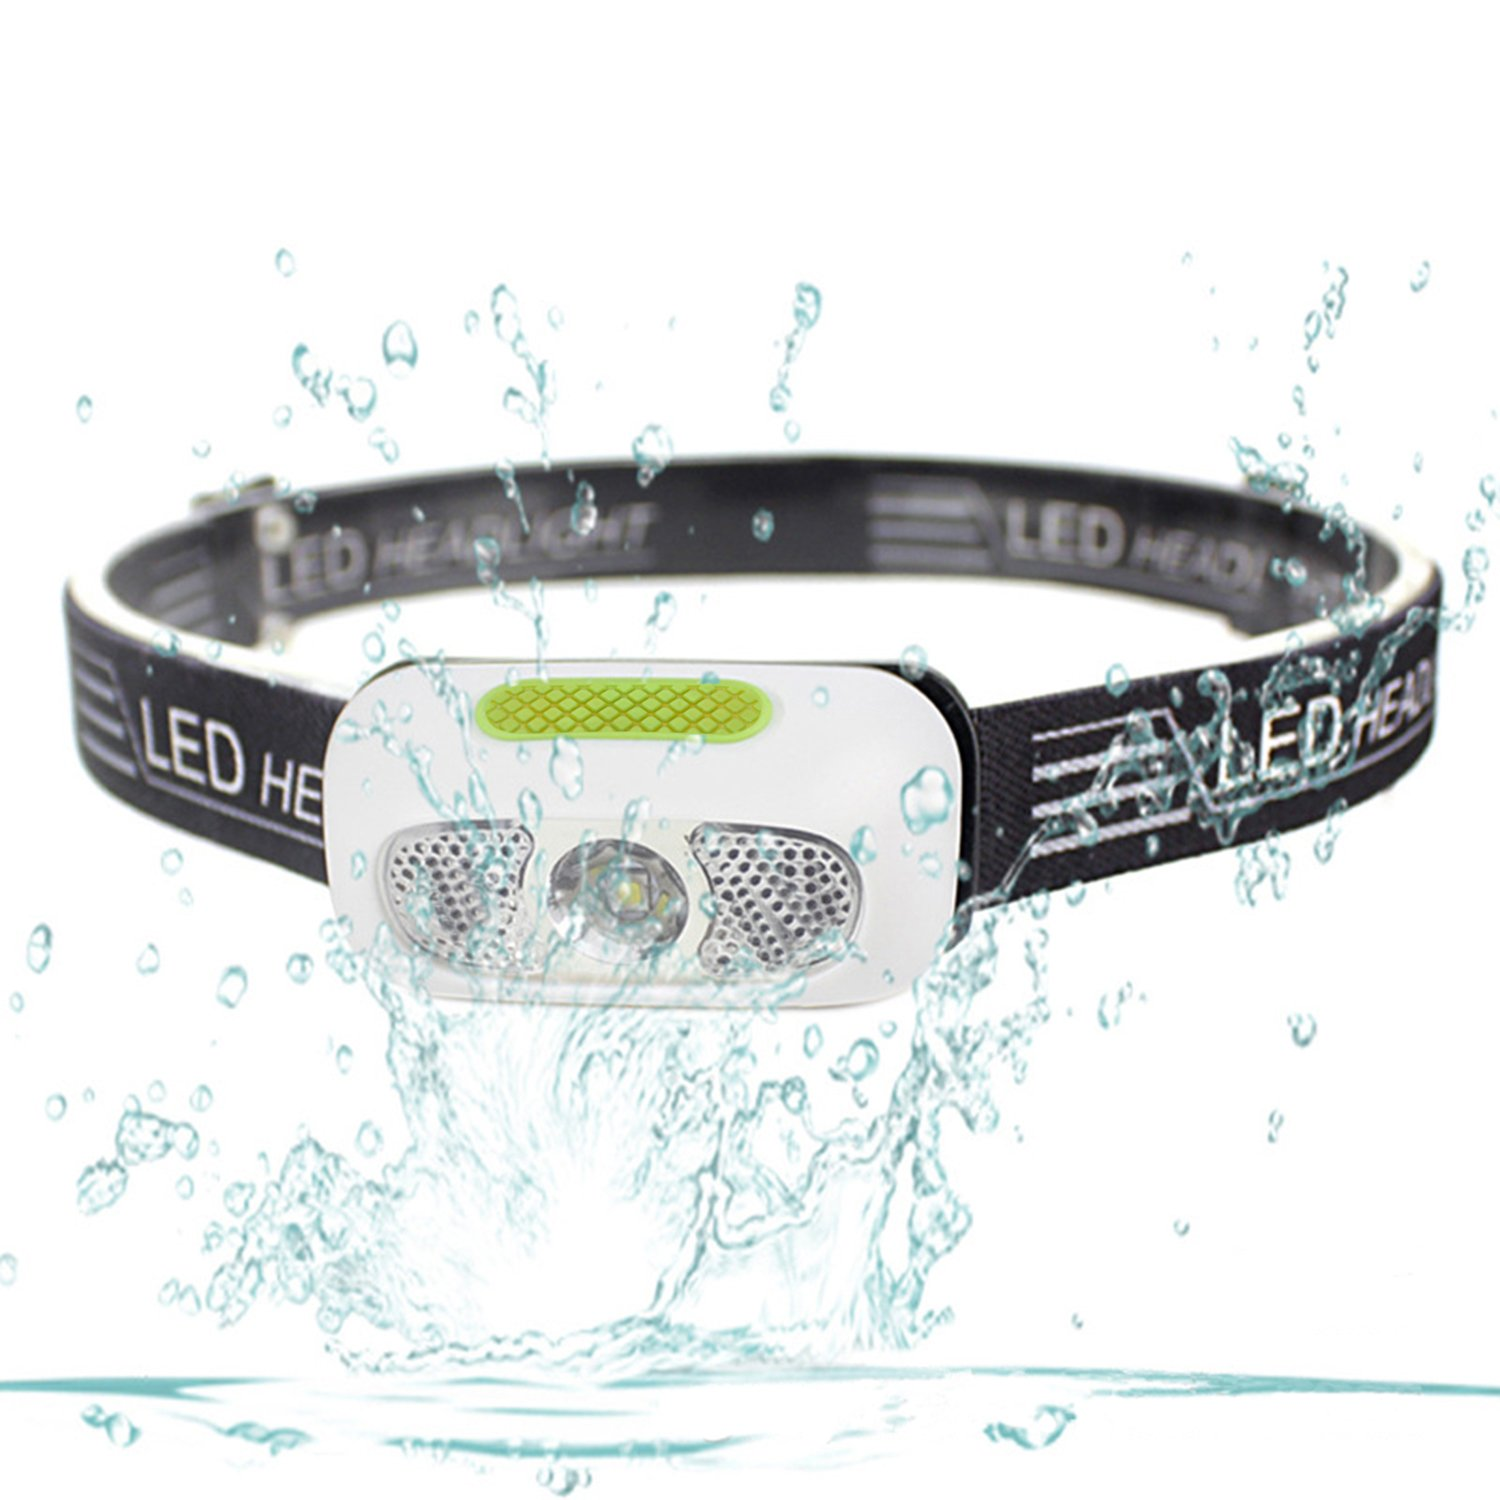 Waterproof LED Headlamp, HFAN USB Rechargeable Headlight LED Headlamps, Waterproof Outdoor Sport Flashlight with Cree XP-G2 LED and Adjustable Headband for Camping, Hiking, Climbing, Fishing, Reading